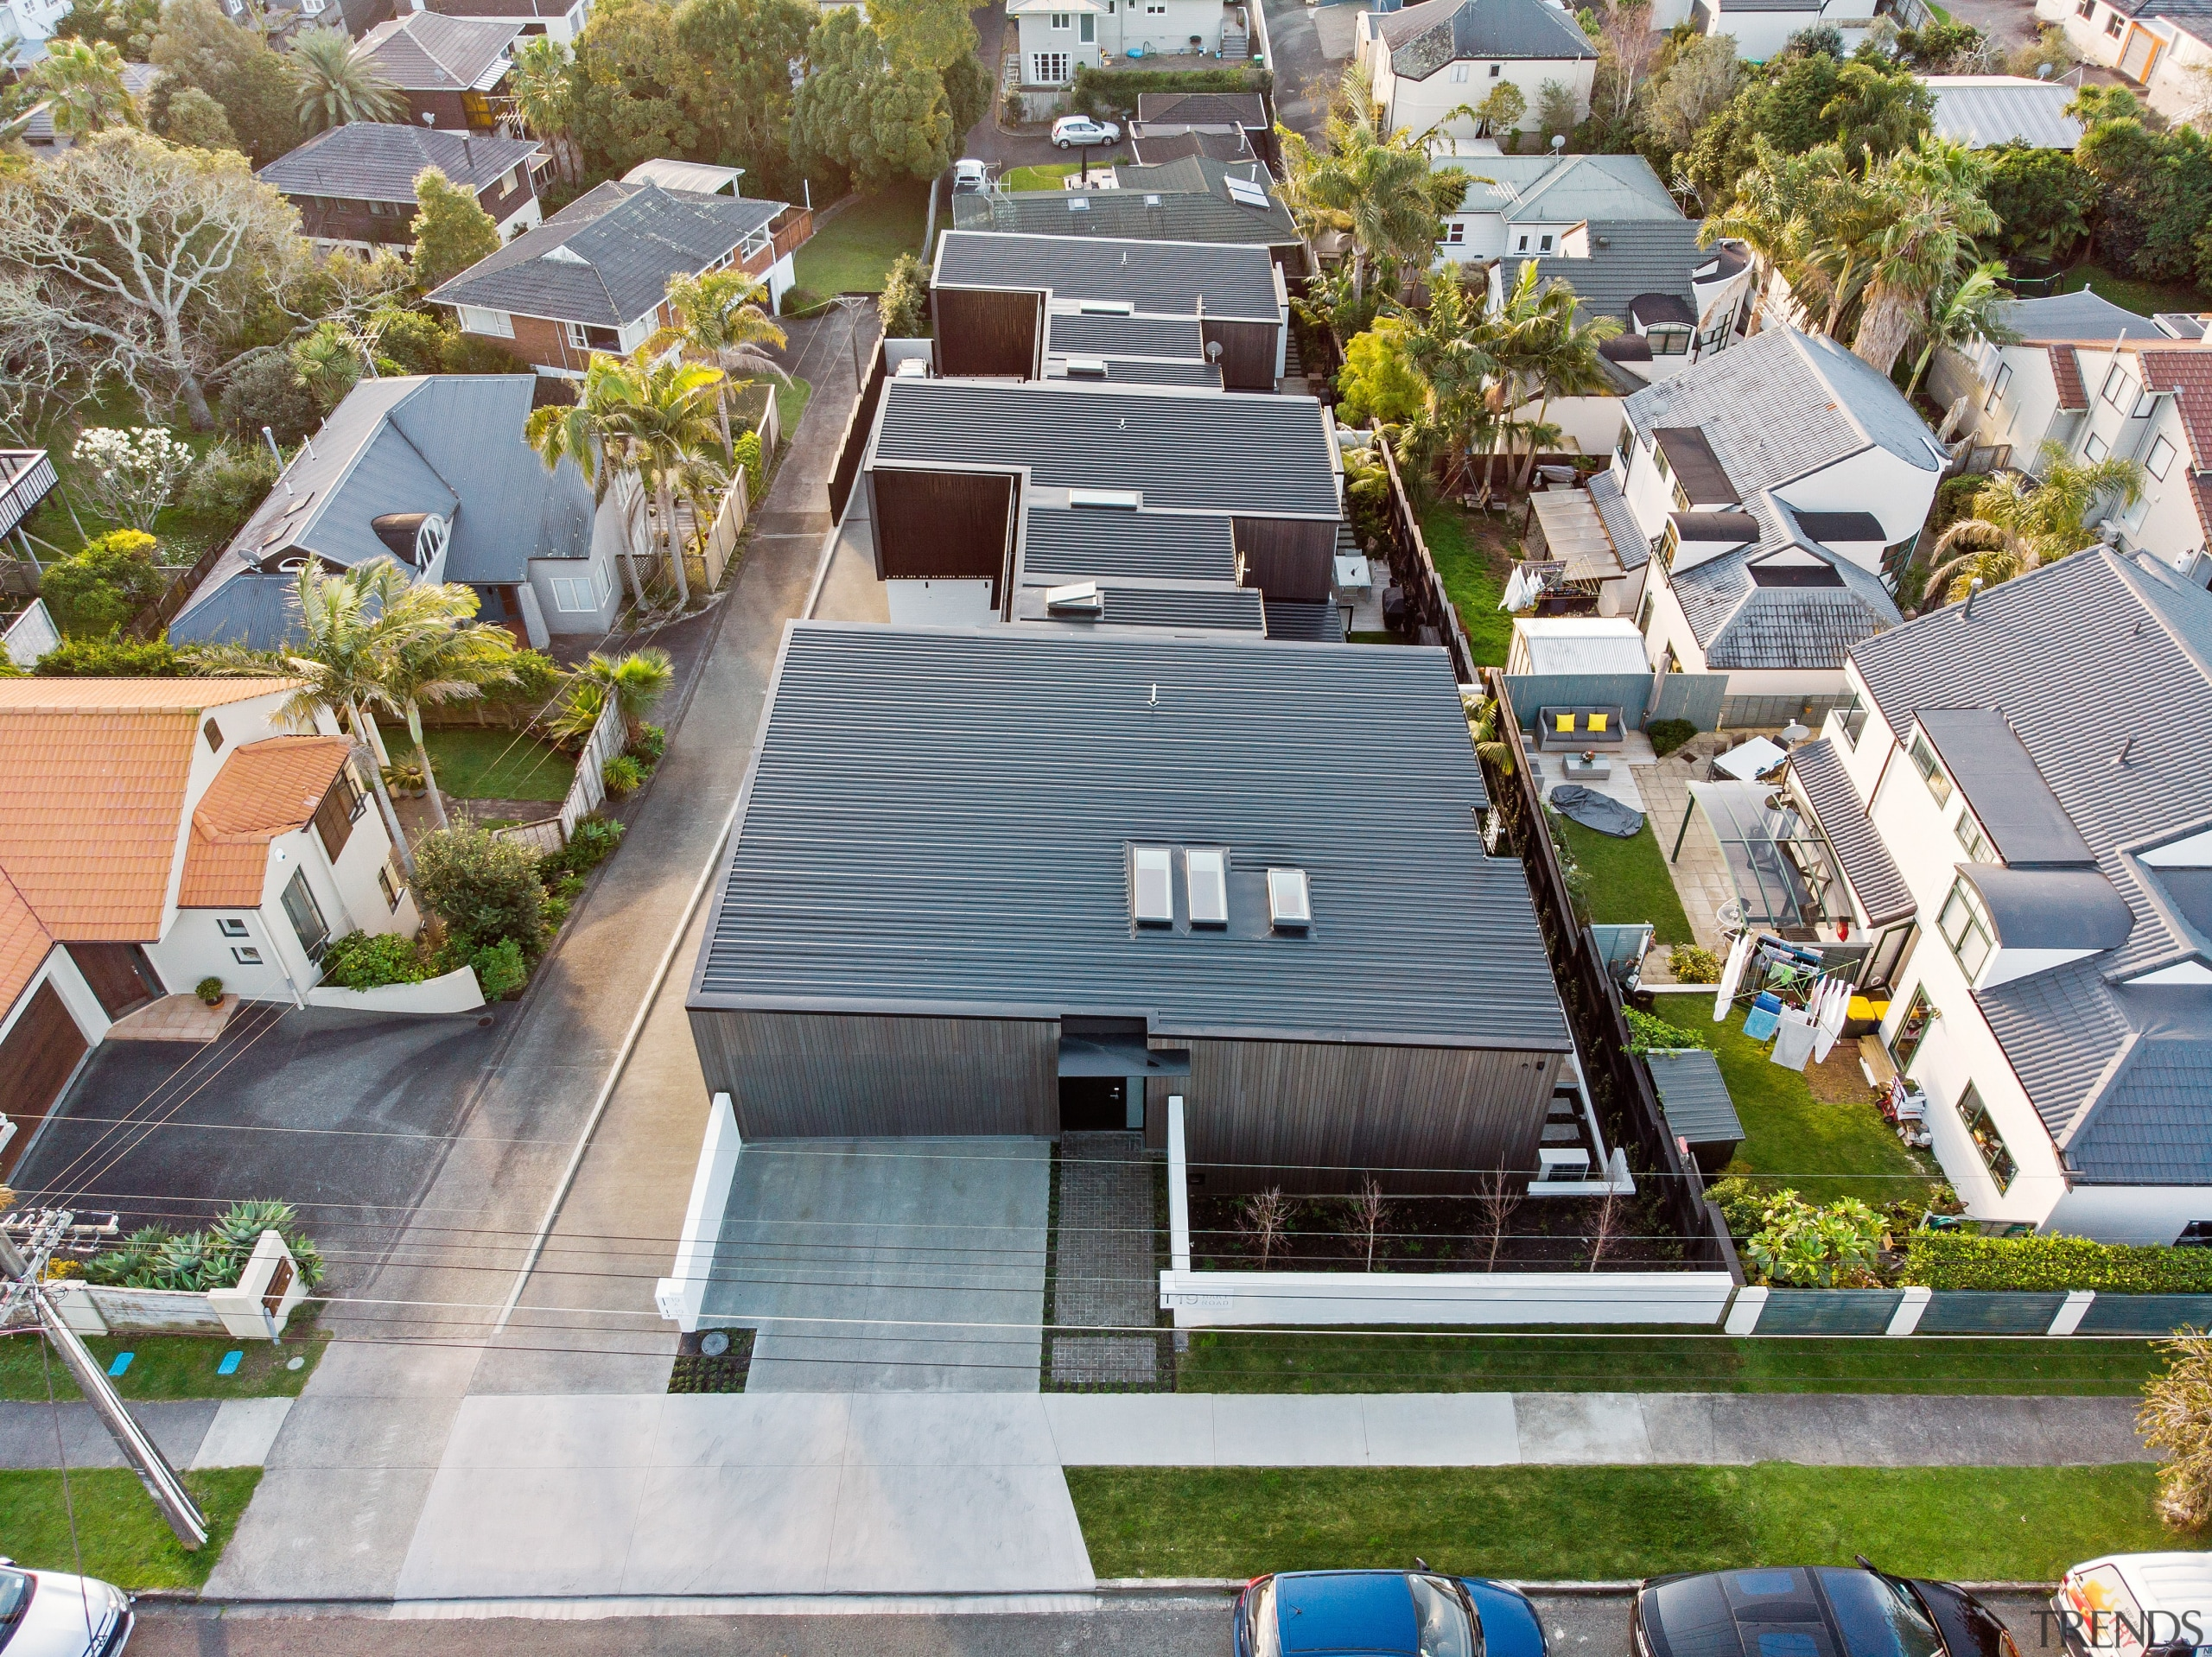 Two existing old houses on this site were aerial photography, apartment, architecture, bird's-eye view, building, city, condominium, facade, home, house, landscape, metropolitan area, mixed-use, neighbourhood, photography, property, real estate, residential area, roof, suburb, urban area, urban design, gray